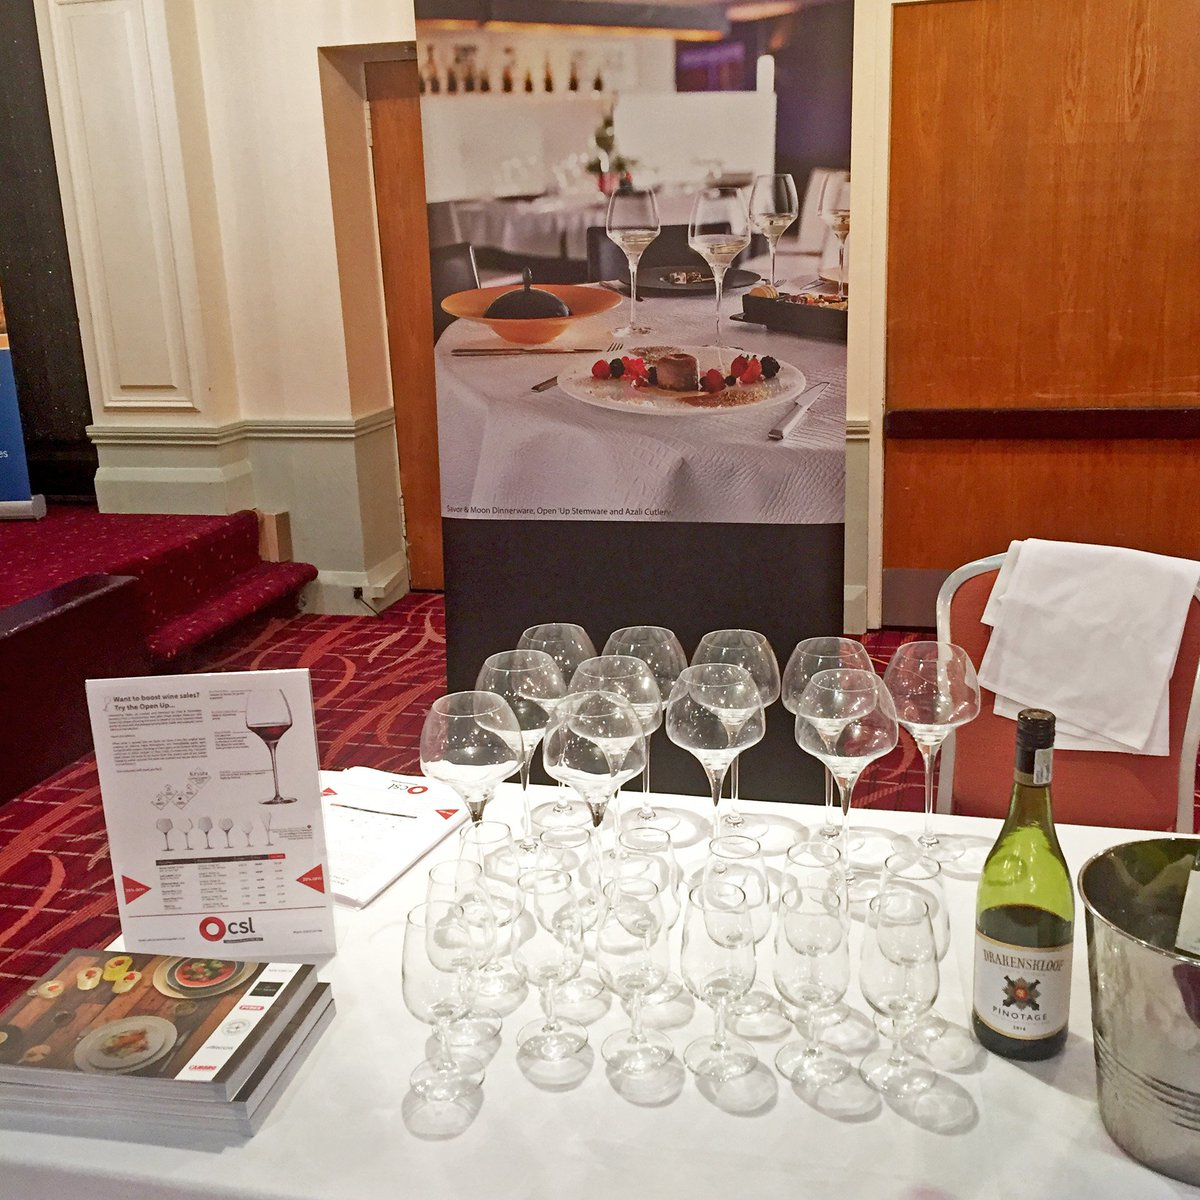 Arc Tableware UK on Twitter \ Catch us at the CSL Catering Trade Show today! @CSLCatering CSL Catering Supplies #WineTasting #Wine #Stemware ... & Arc Tableware UK on Twitter: \